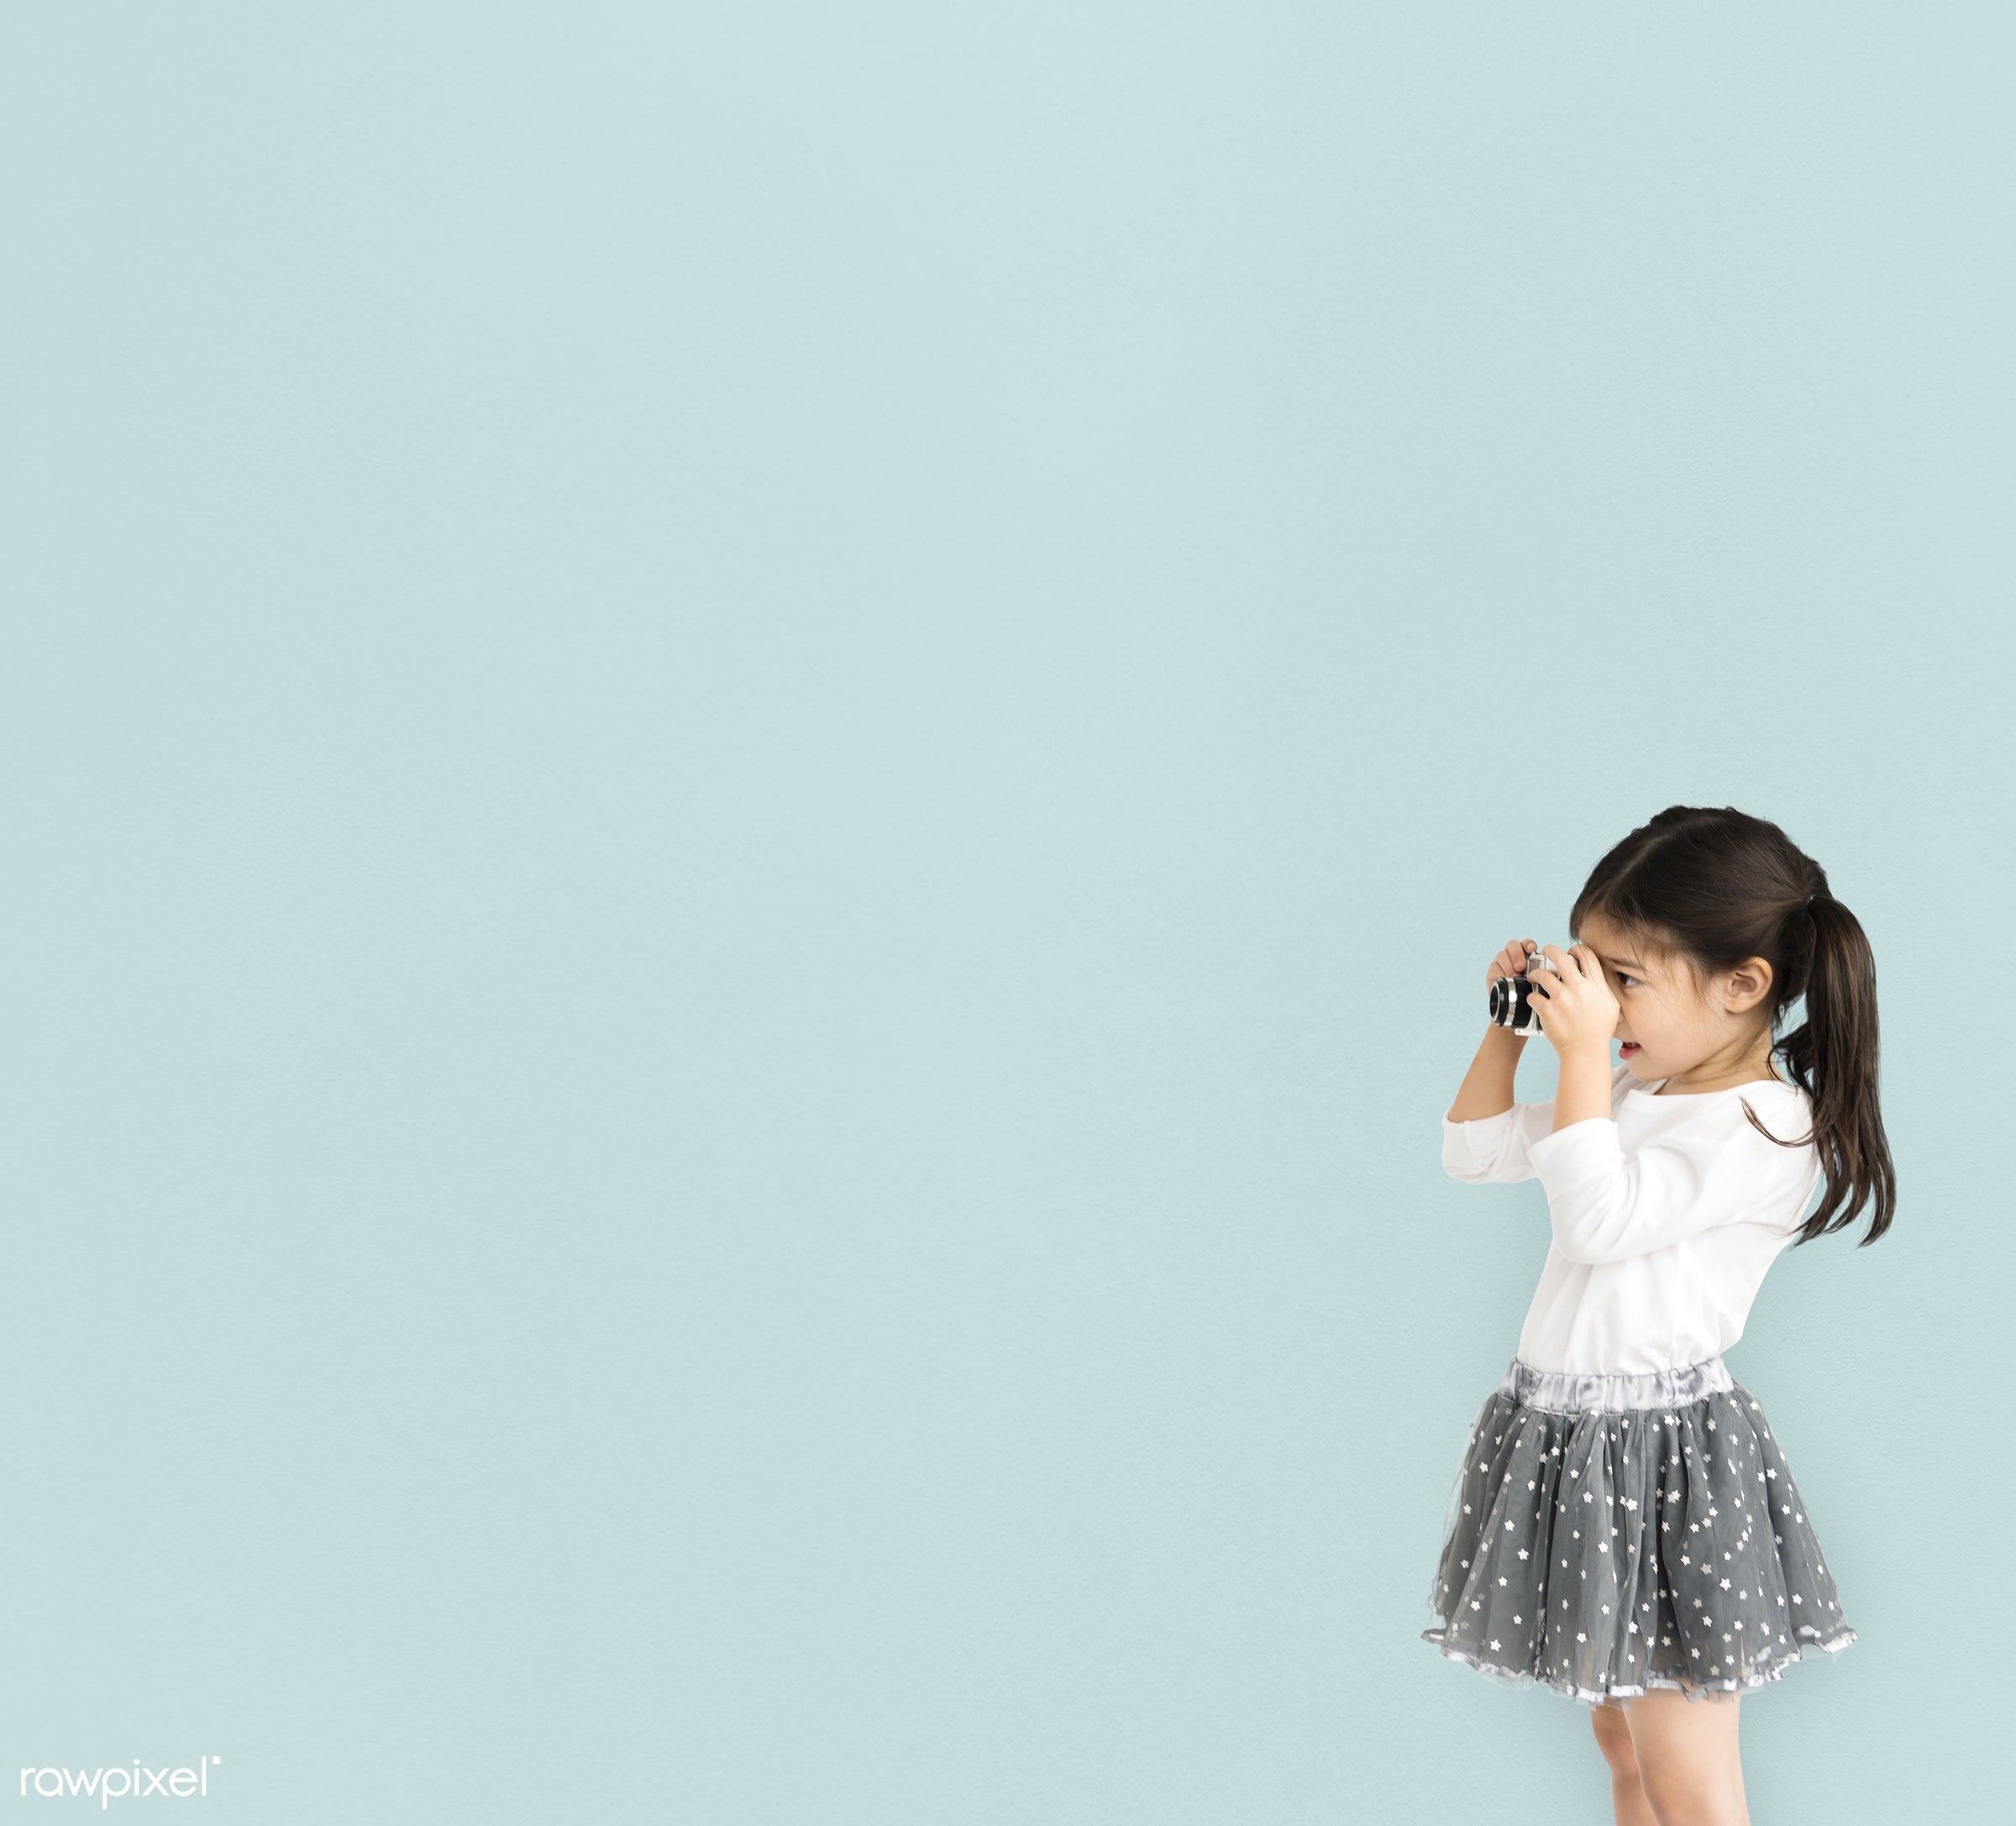 studio, person, innocent, little, people, kid, curious, solo, search, childhood, alone, isolated, leisure, youth, portrait,...